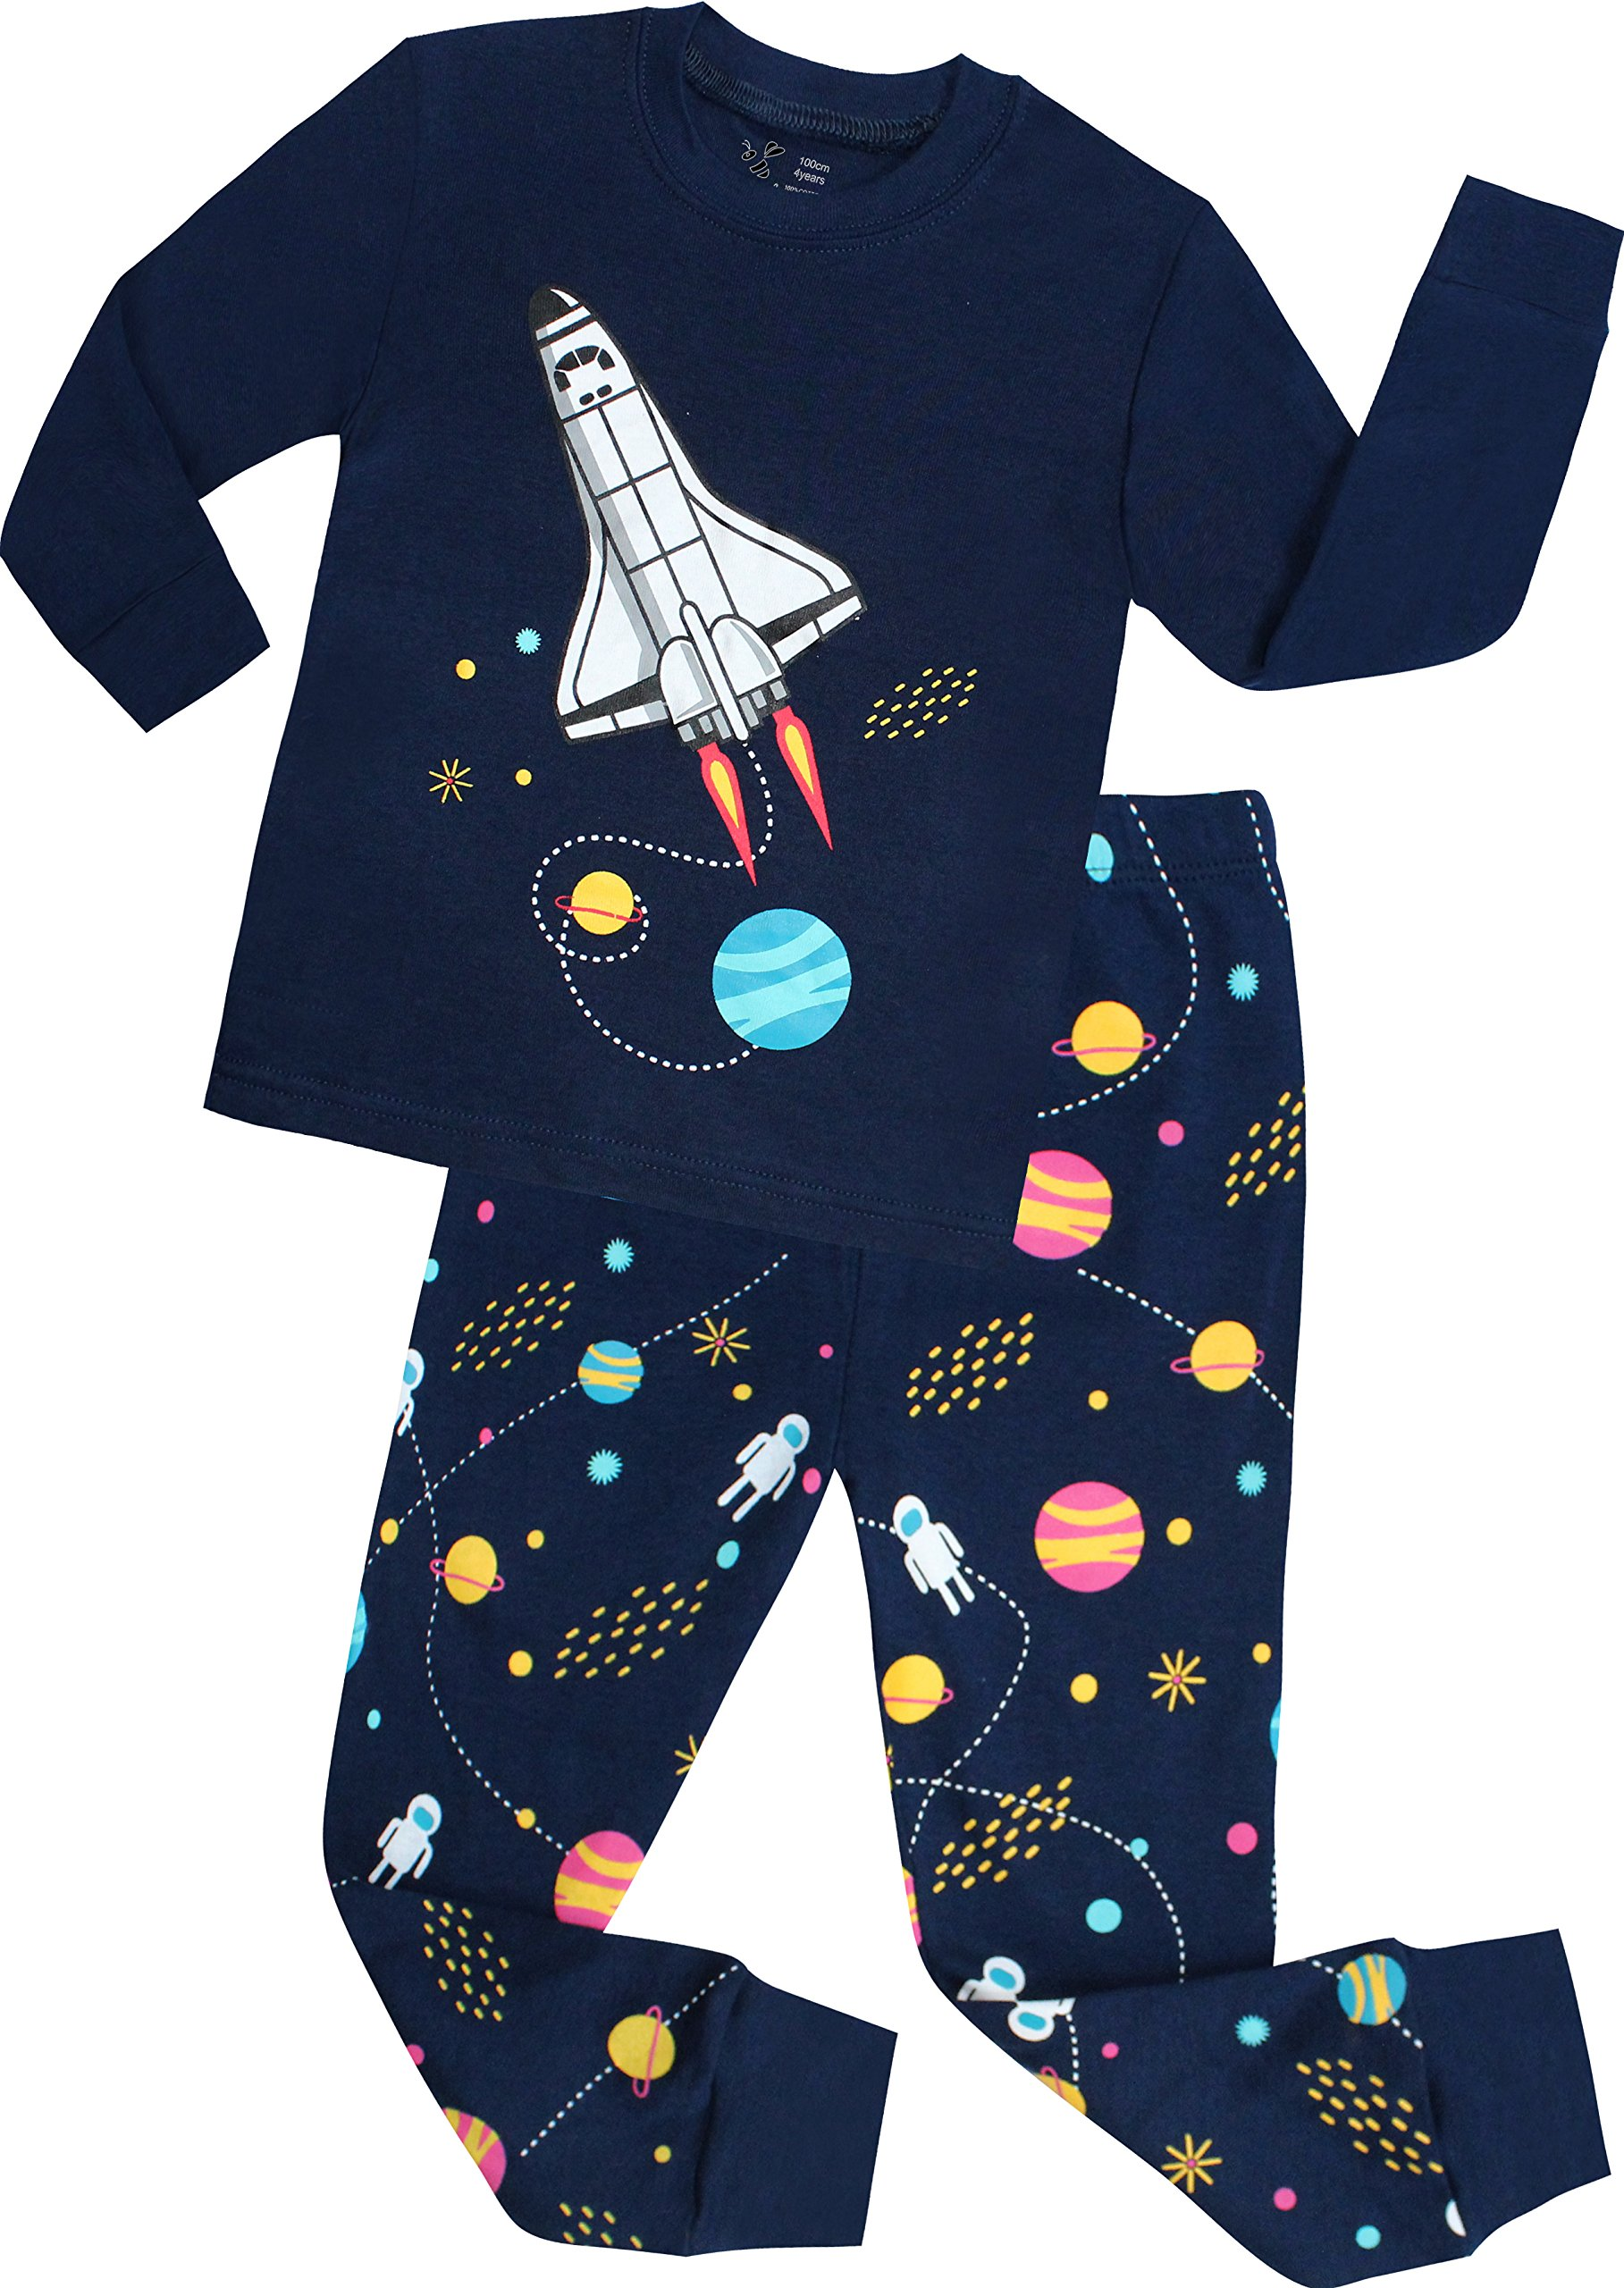 CoralBee Boys Rocket Pajamas Toddler Kids Clothes Children Christmas PJs Pants Set Cotton Sleepwear Size 5 Years by CoralBee